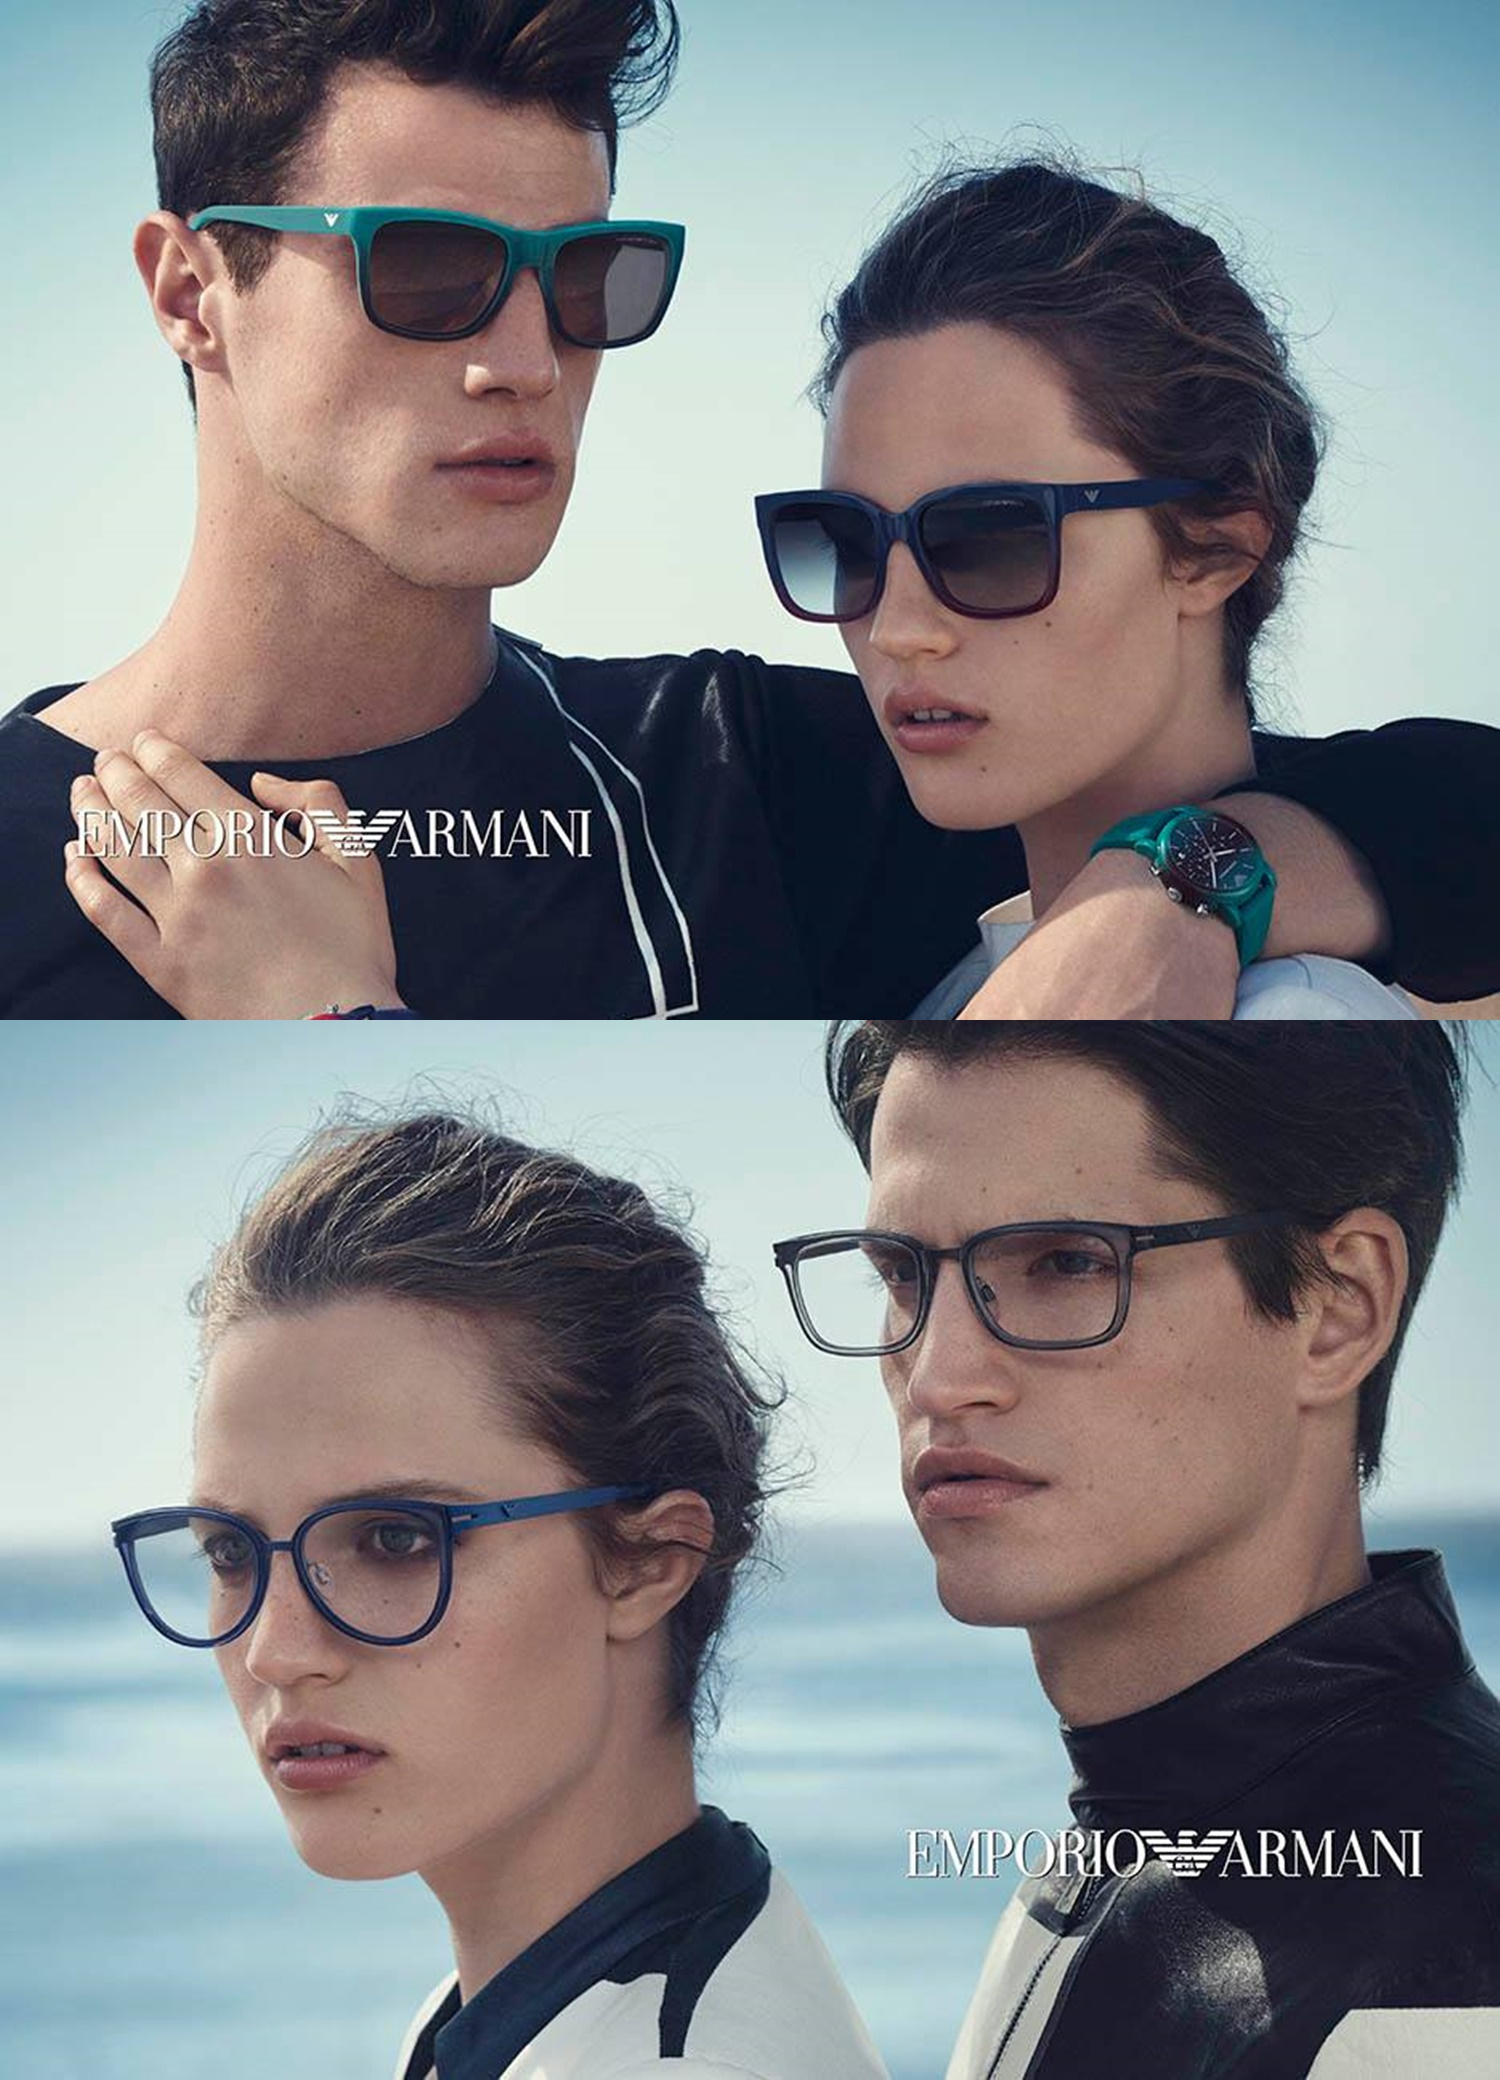 giorgio armani sunglasses asnb  Gorgio Armani and Emporio Armani Now at Illuminata!